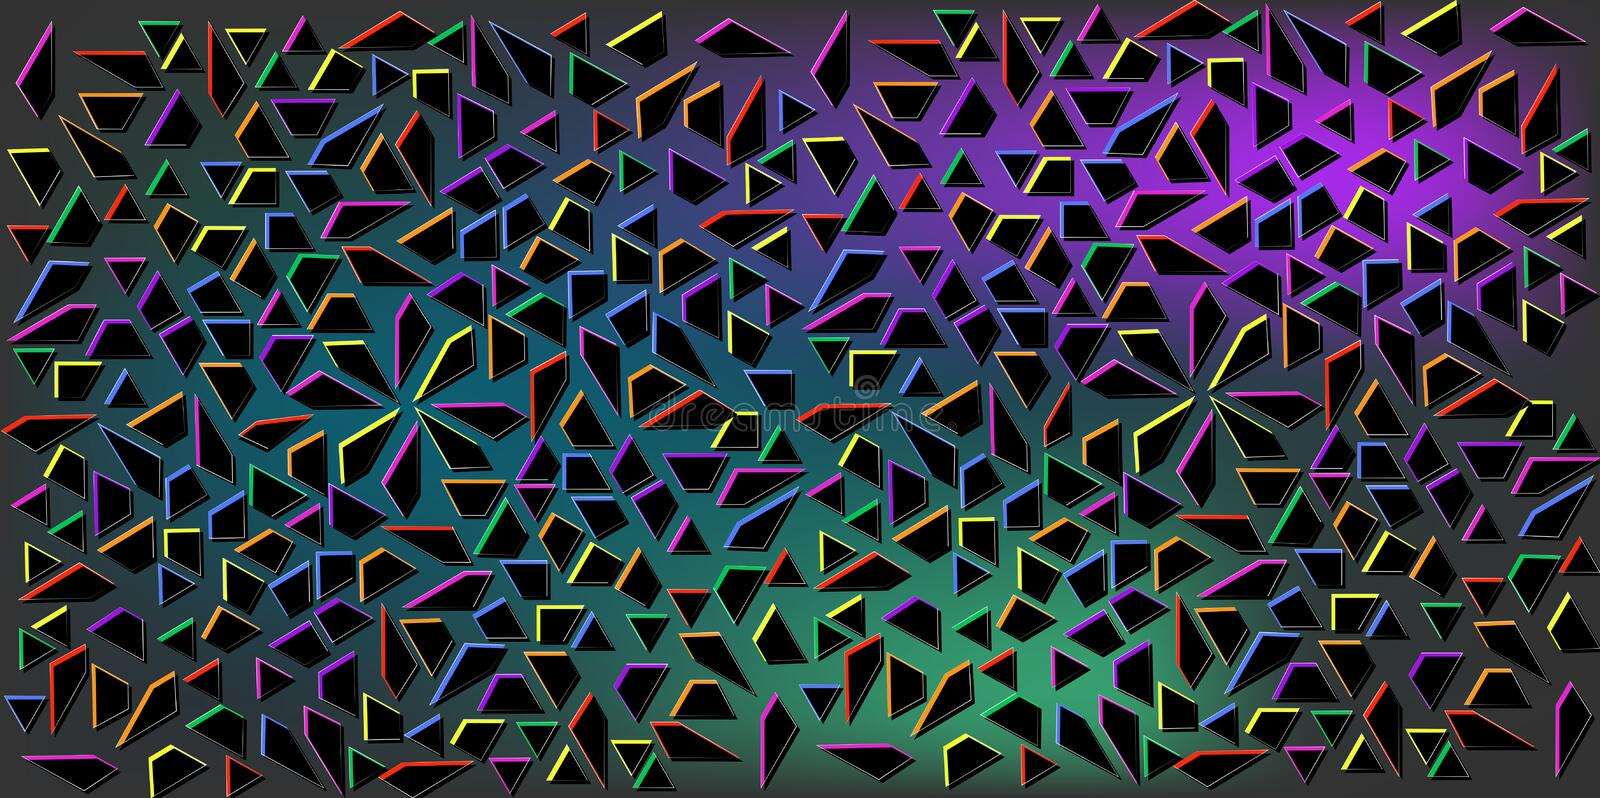 Dark Colors vector of small black triangles on colorful background. Illustration of abstract texture of triangles. Pattern design vector illustration